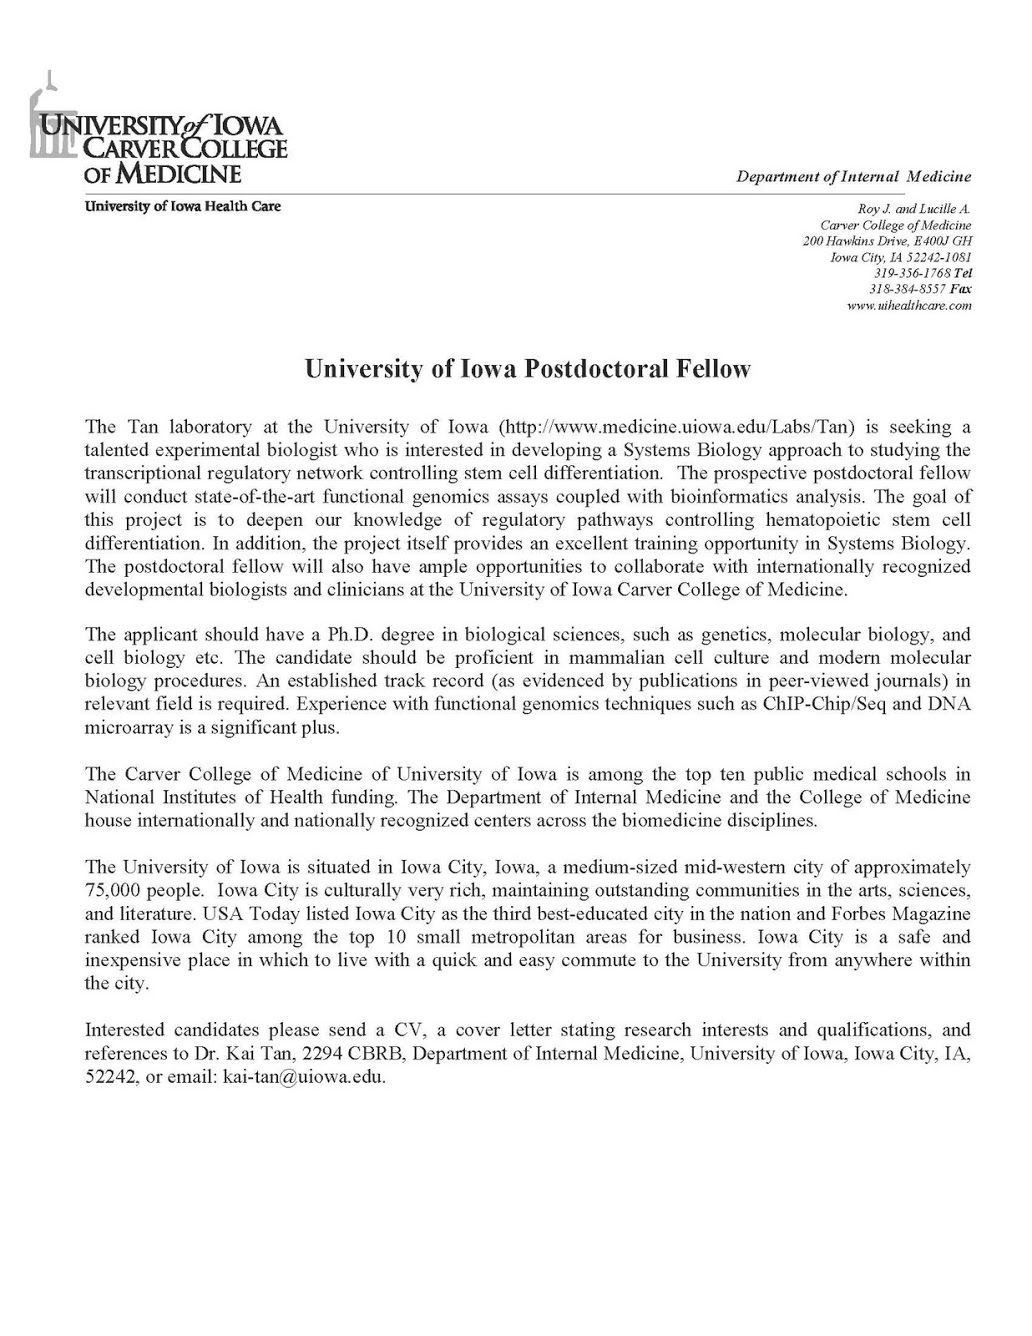 Cover Letter For Assistant Professor Position Jianbochen Postdoc